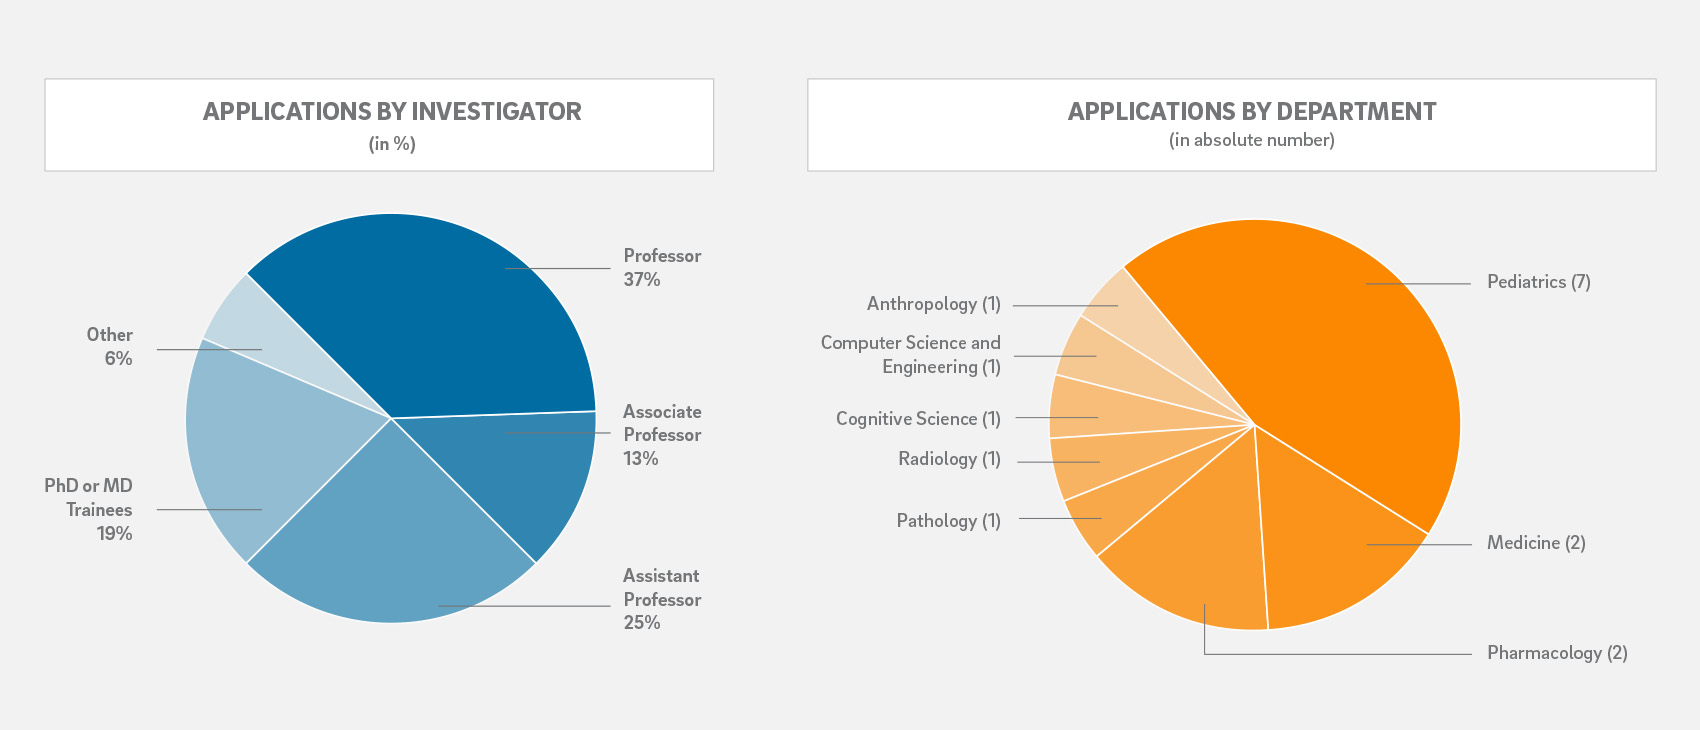 pie charts for percentages of applications by investigator level and by department